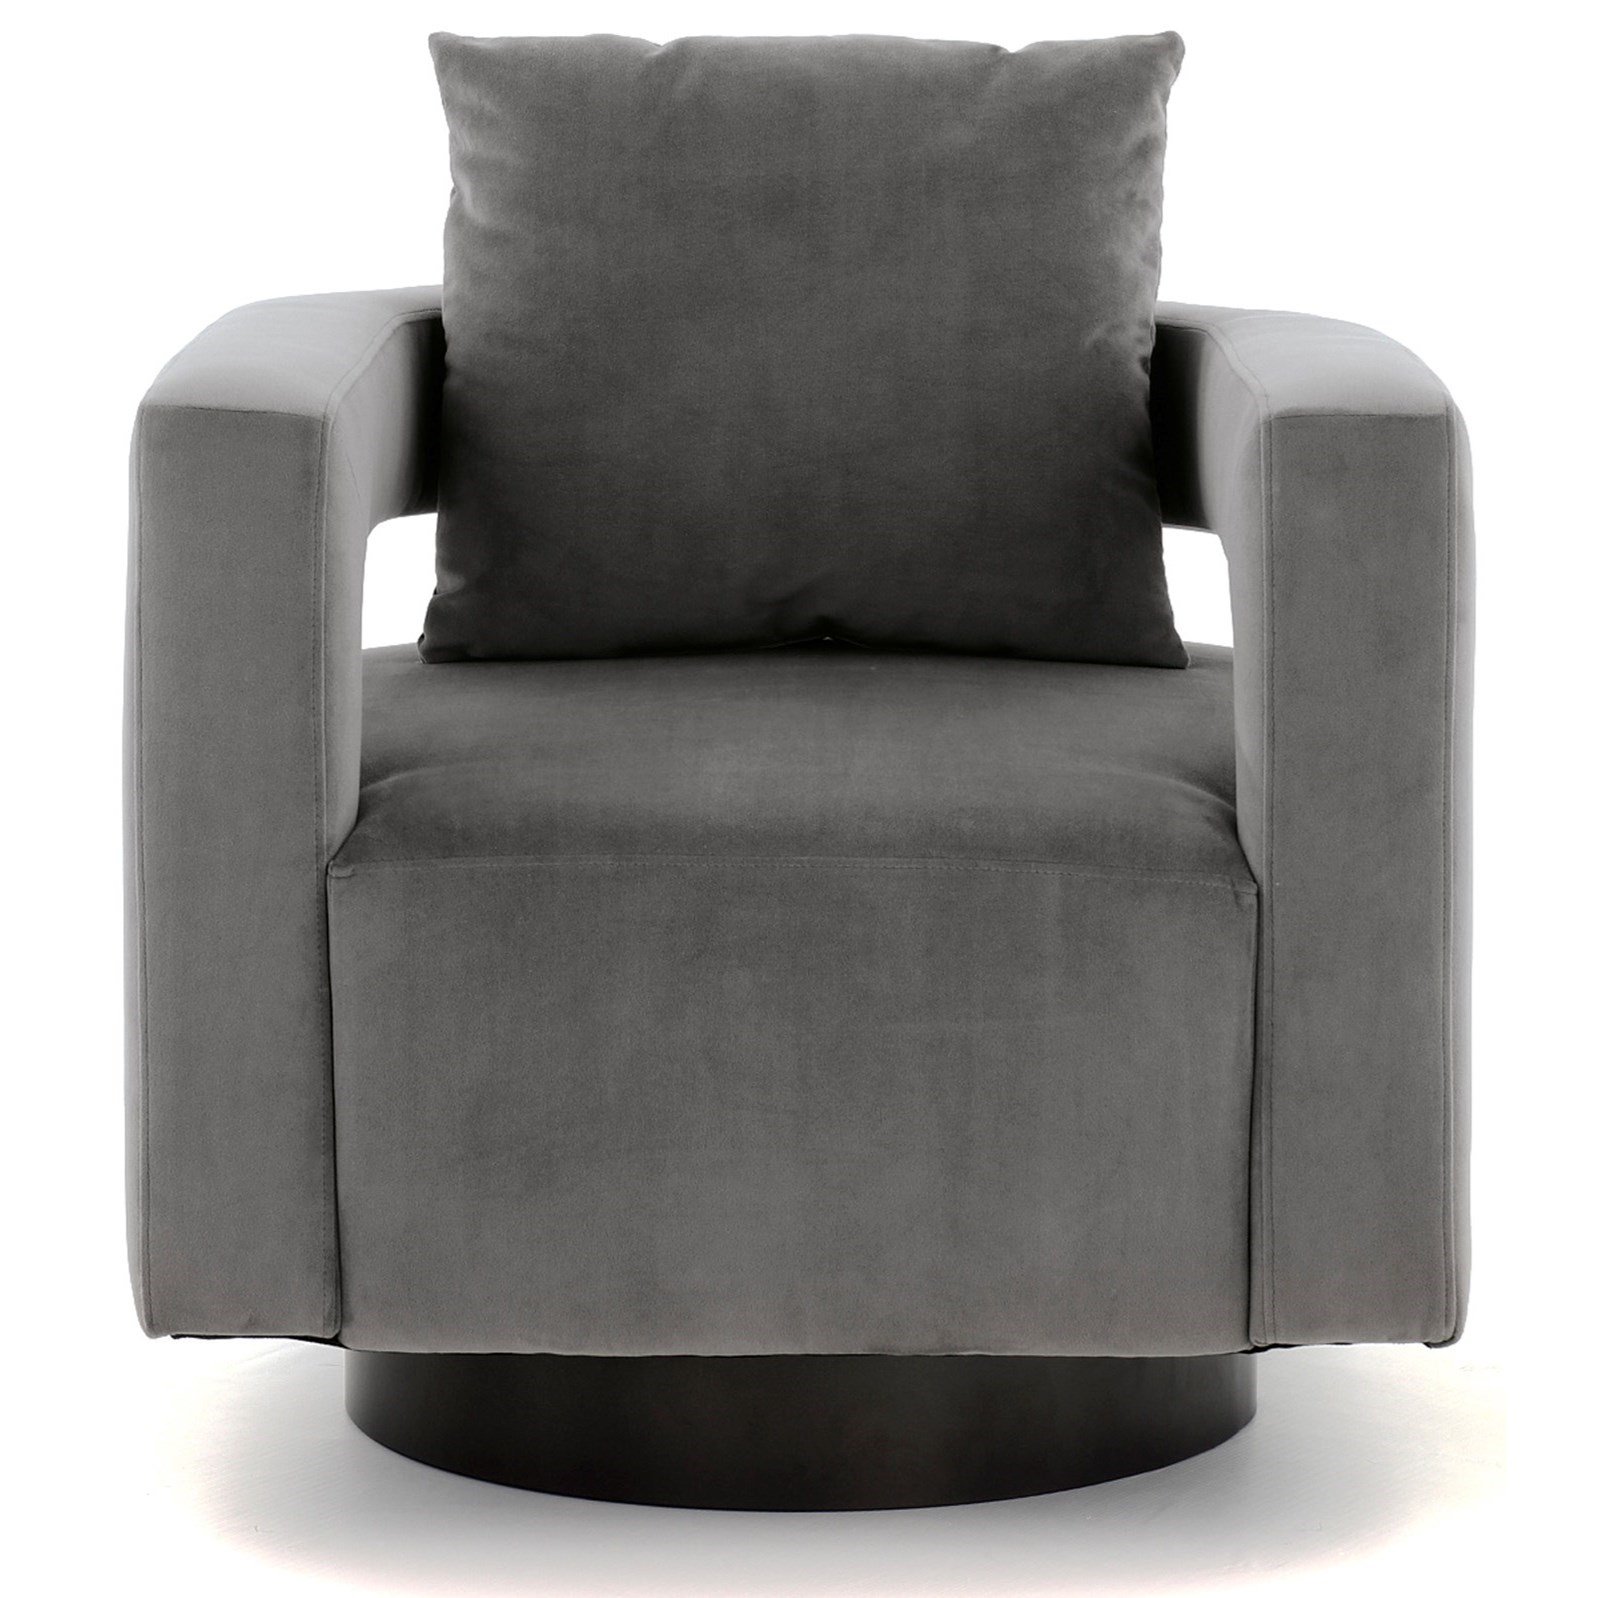 Alcoma Swivel Accent Chair by Ashley (Signature Design) at Johnny Janosik